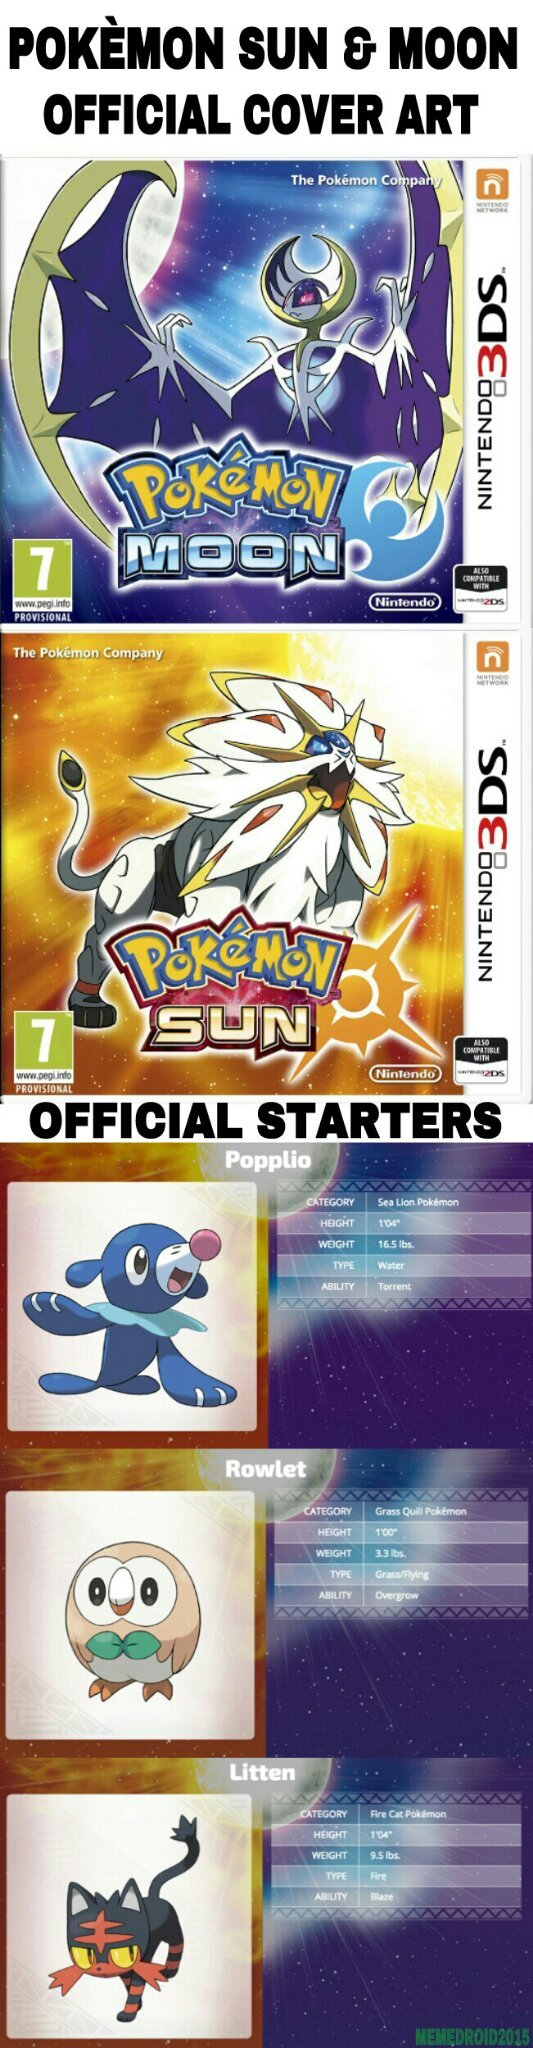 For the Pokèmon fans on Memedroid that might have missed it